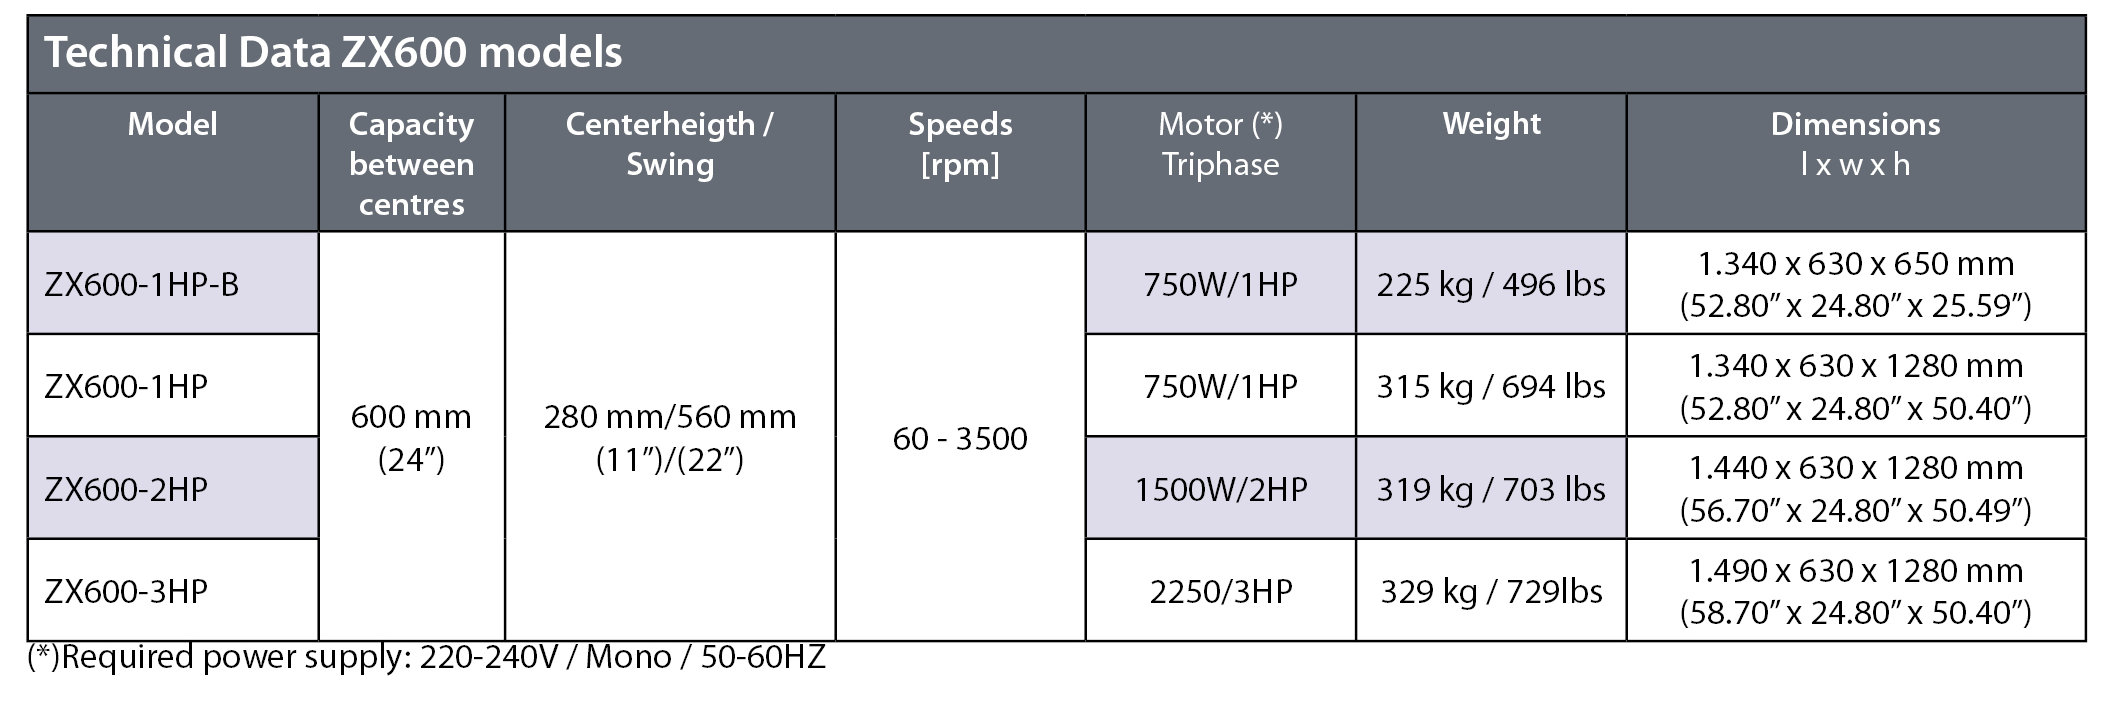 Technical data ZX600 models